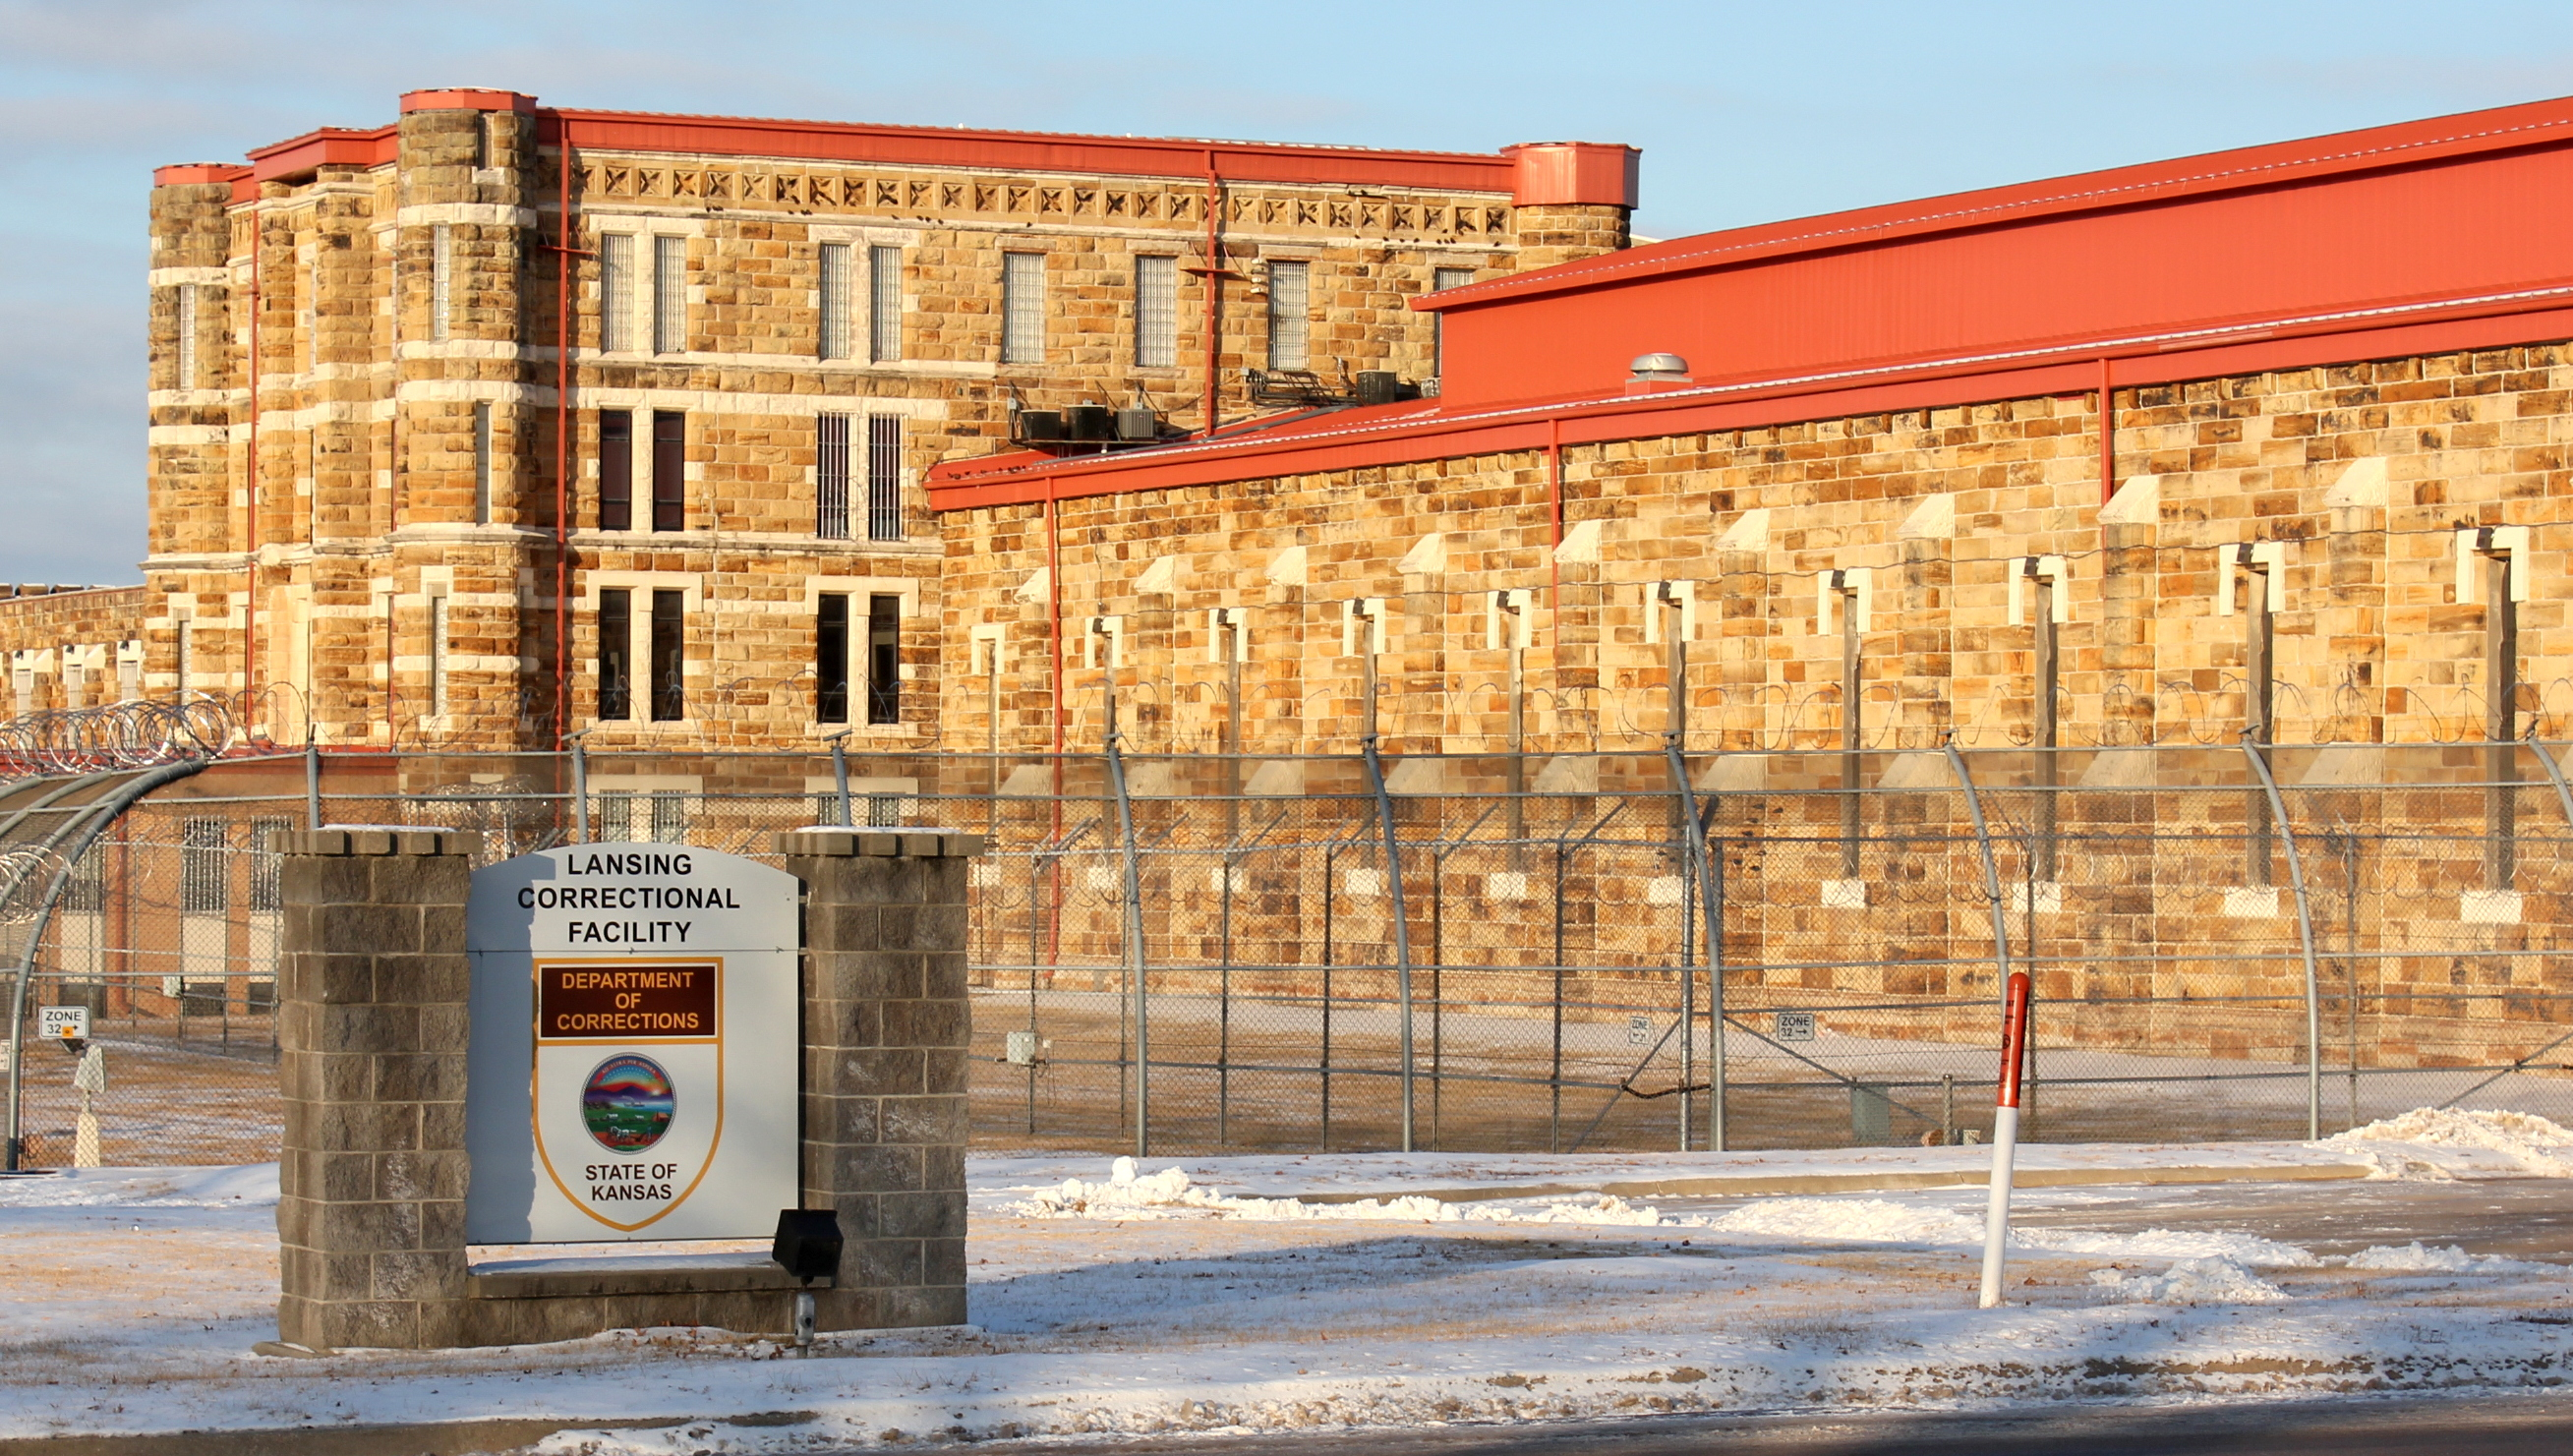 The prison in Lansing. (Photo by Stephen Koranda)